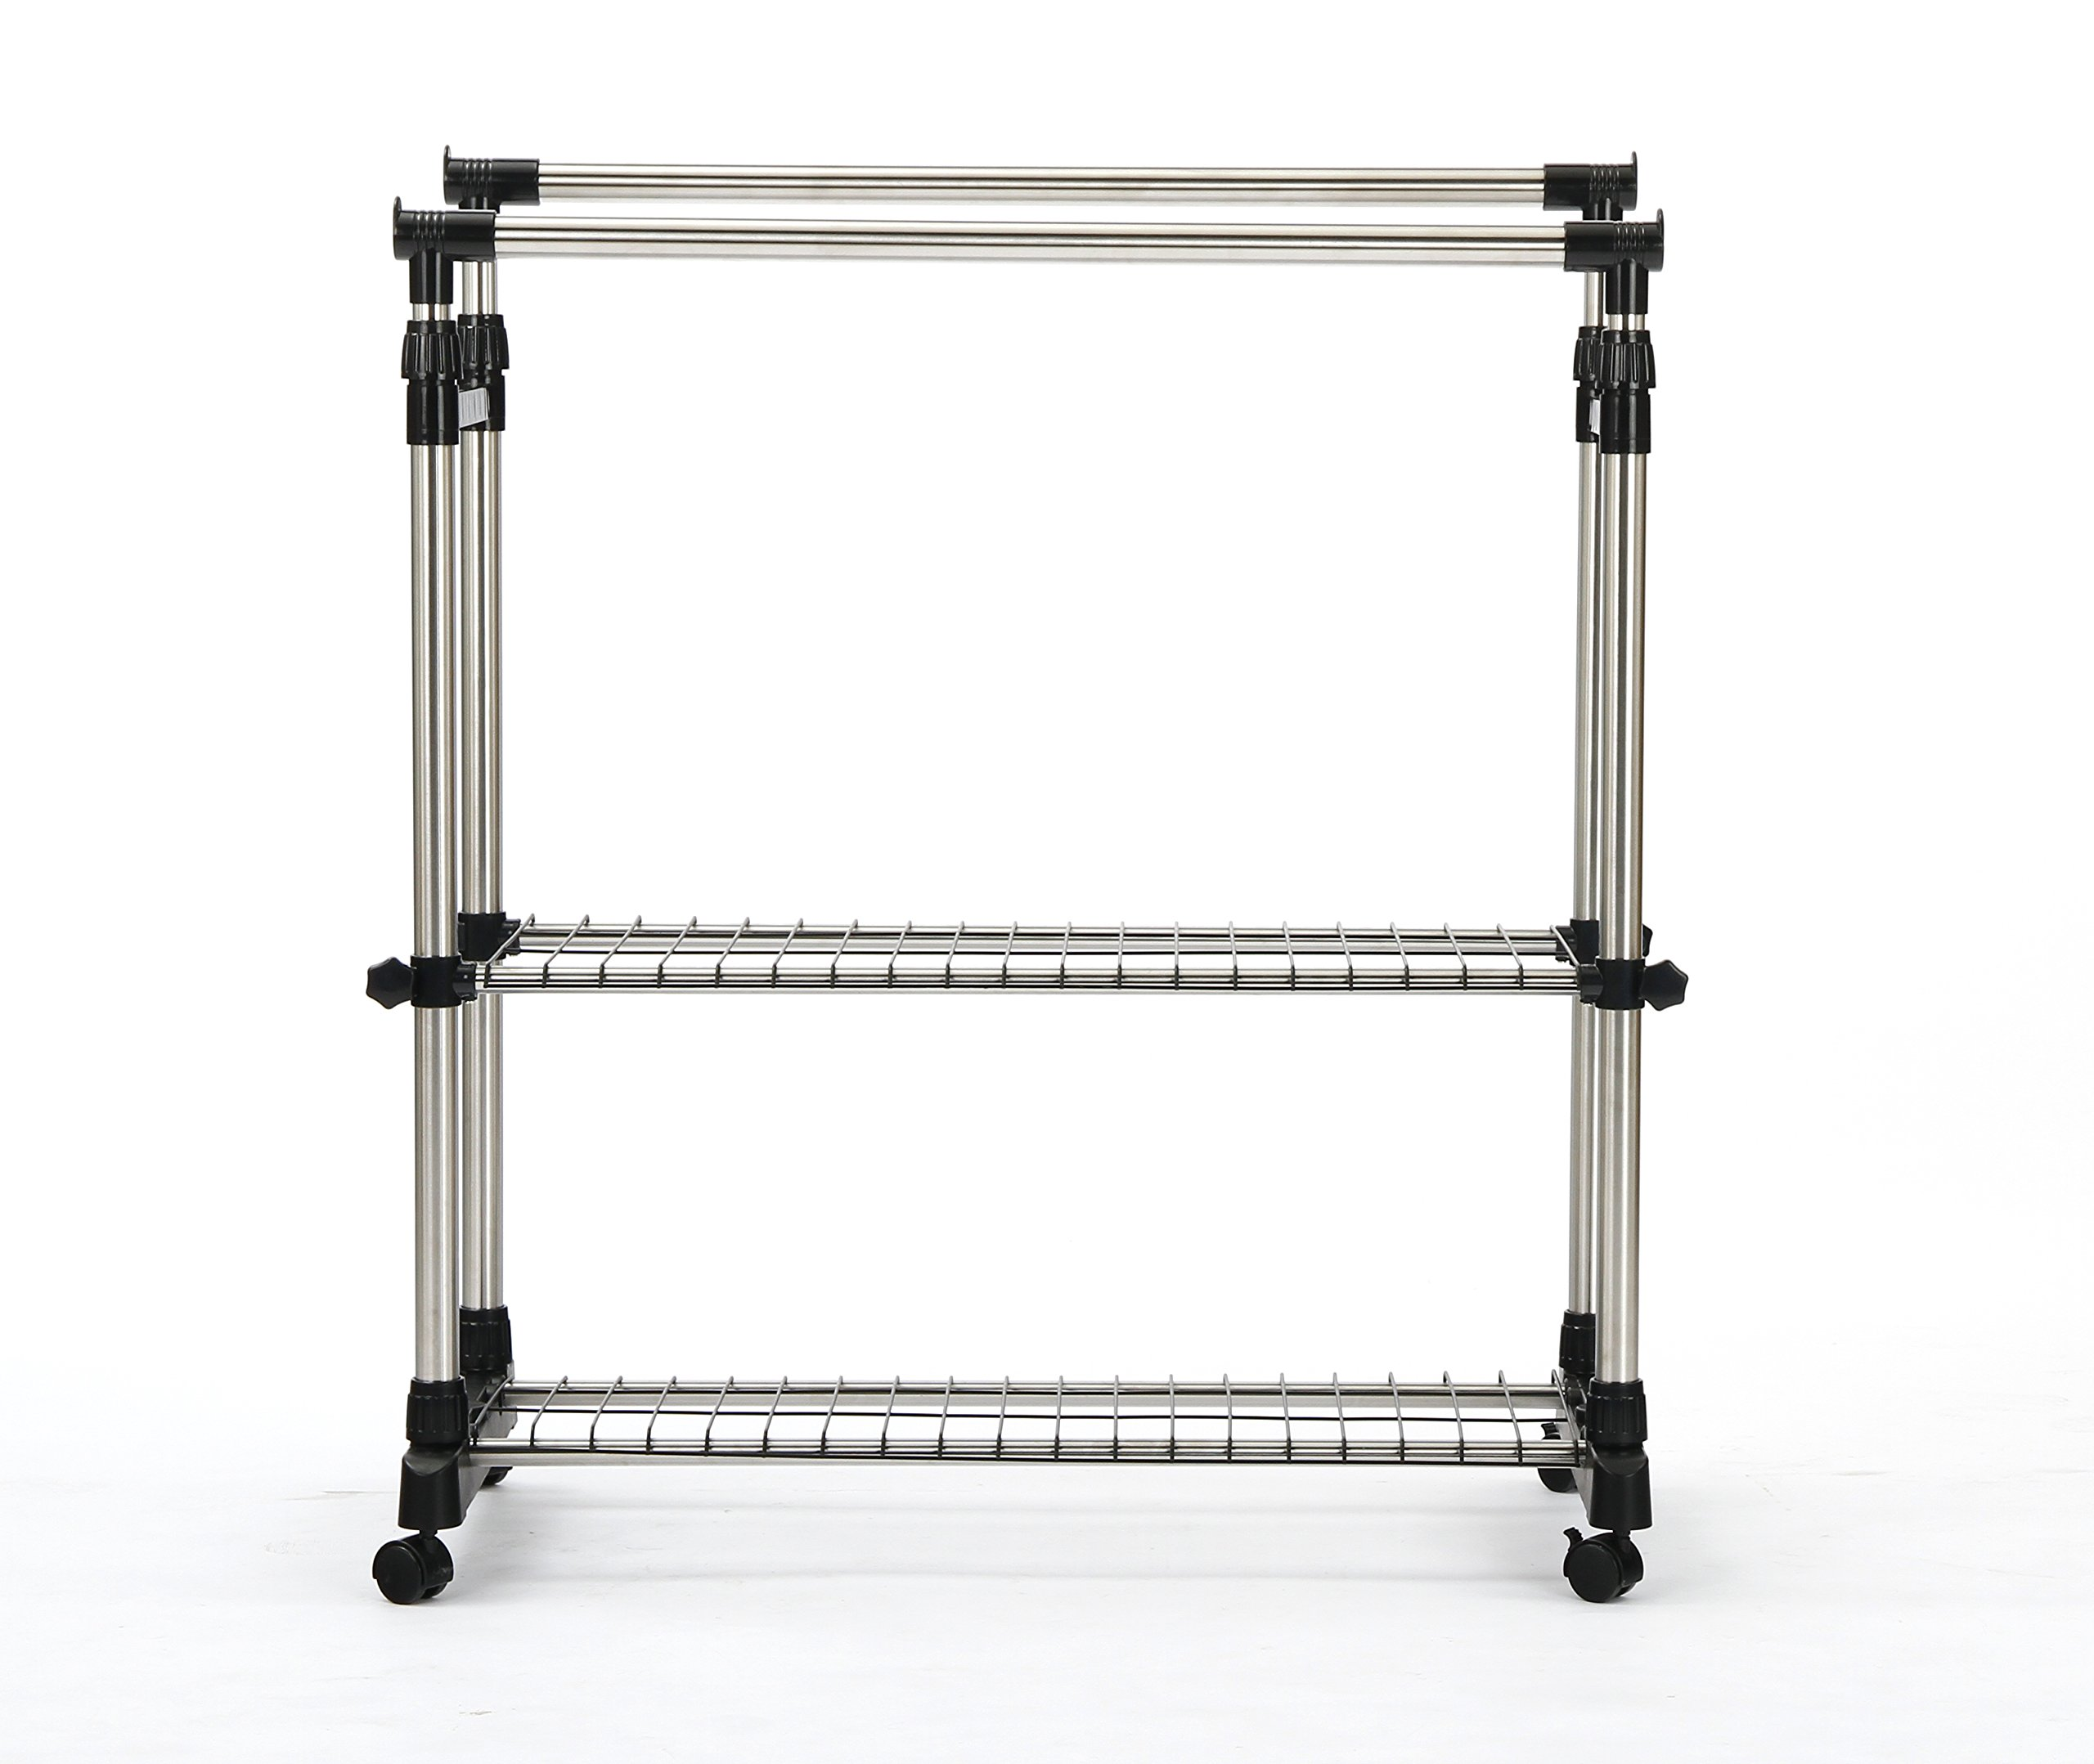 SUNPACE Clothing Garment Rack Heavy Duty SUN004 Double Hanging Rod Garment Rack With Shelves